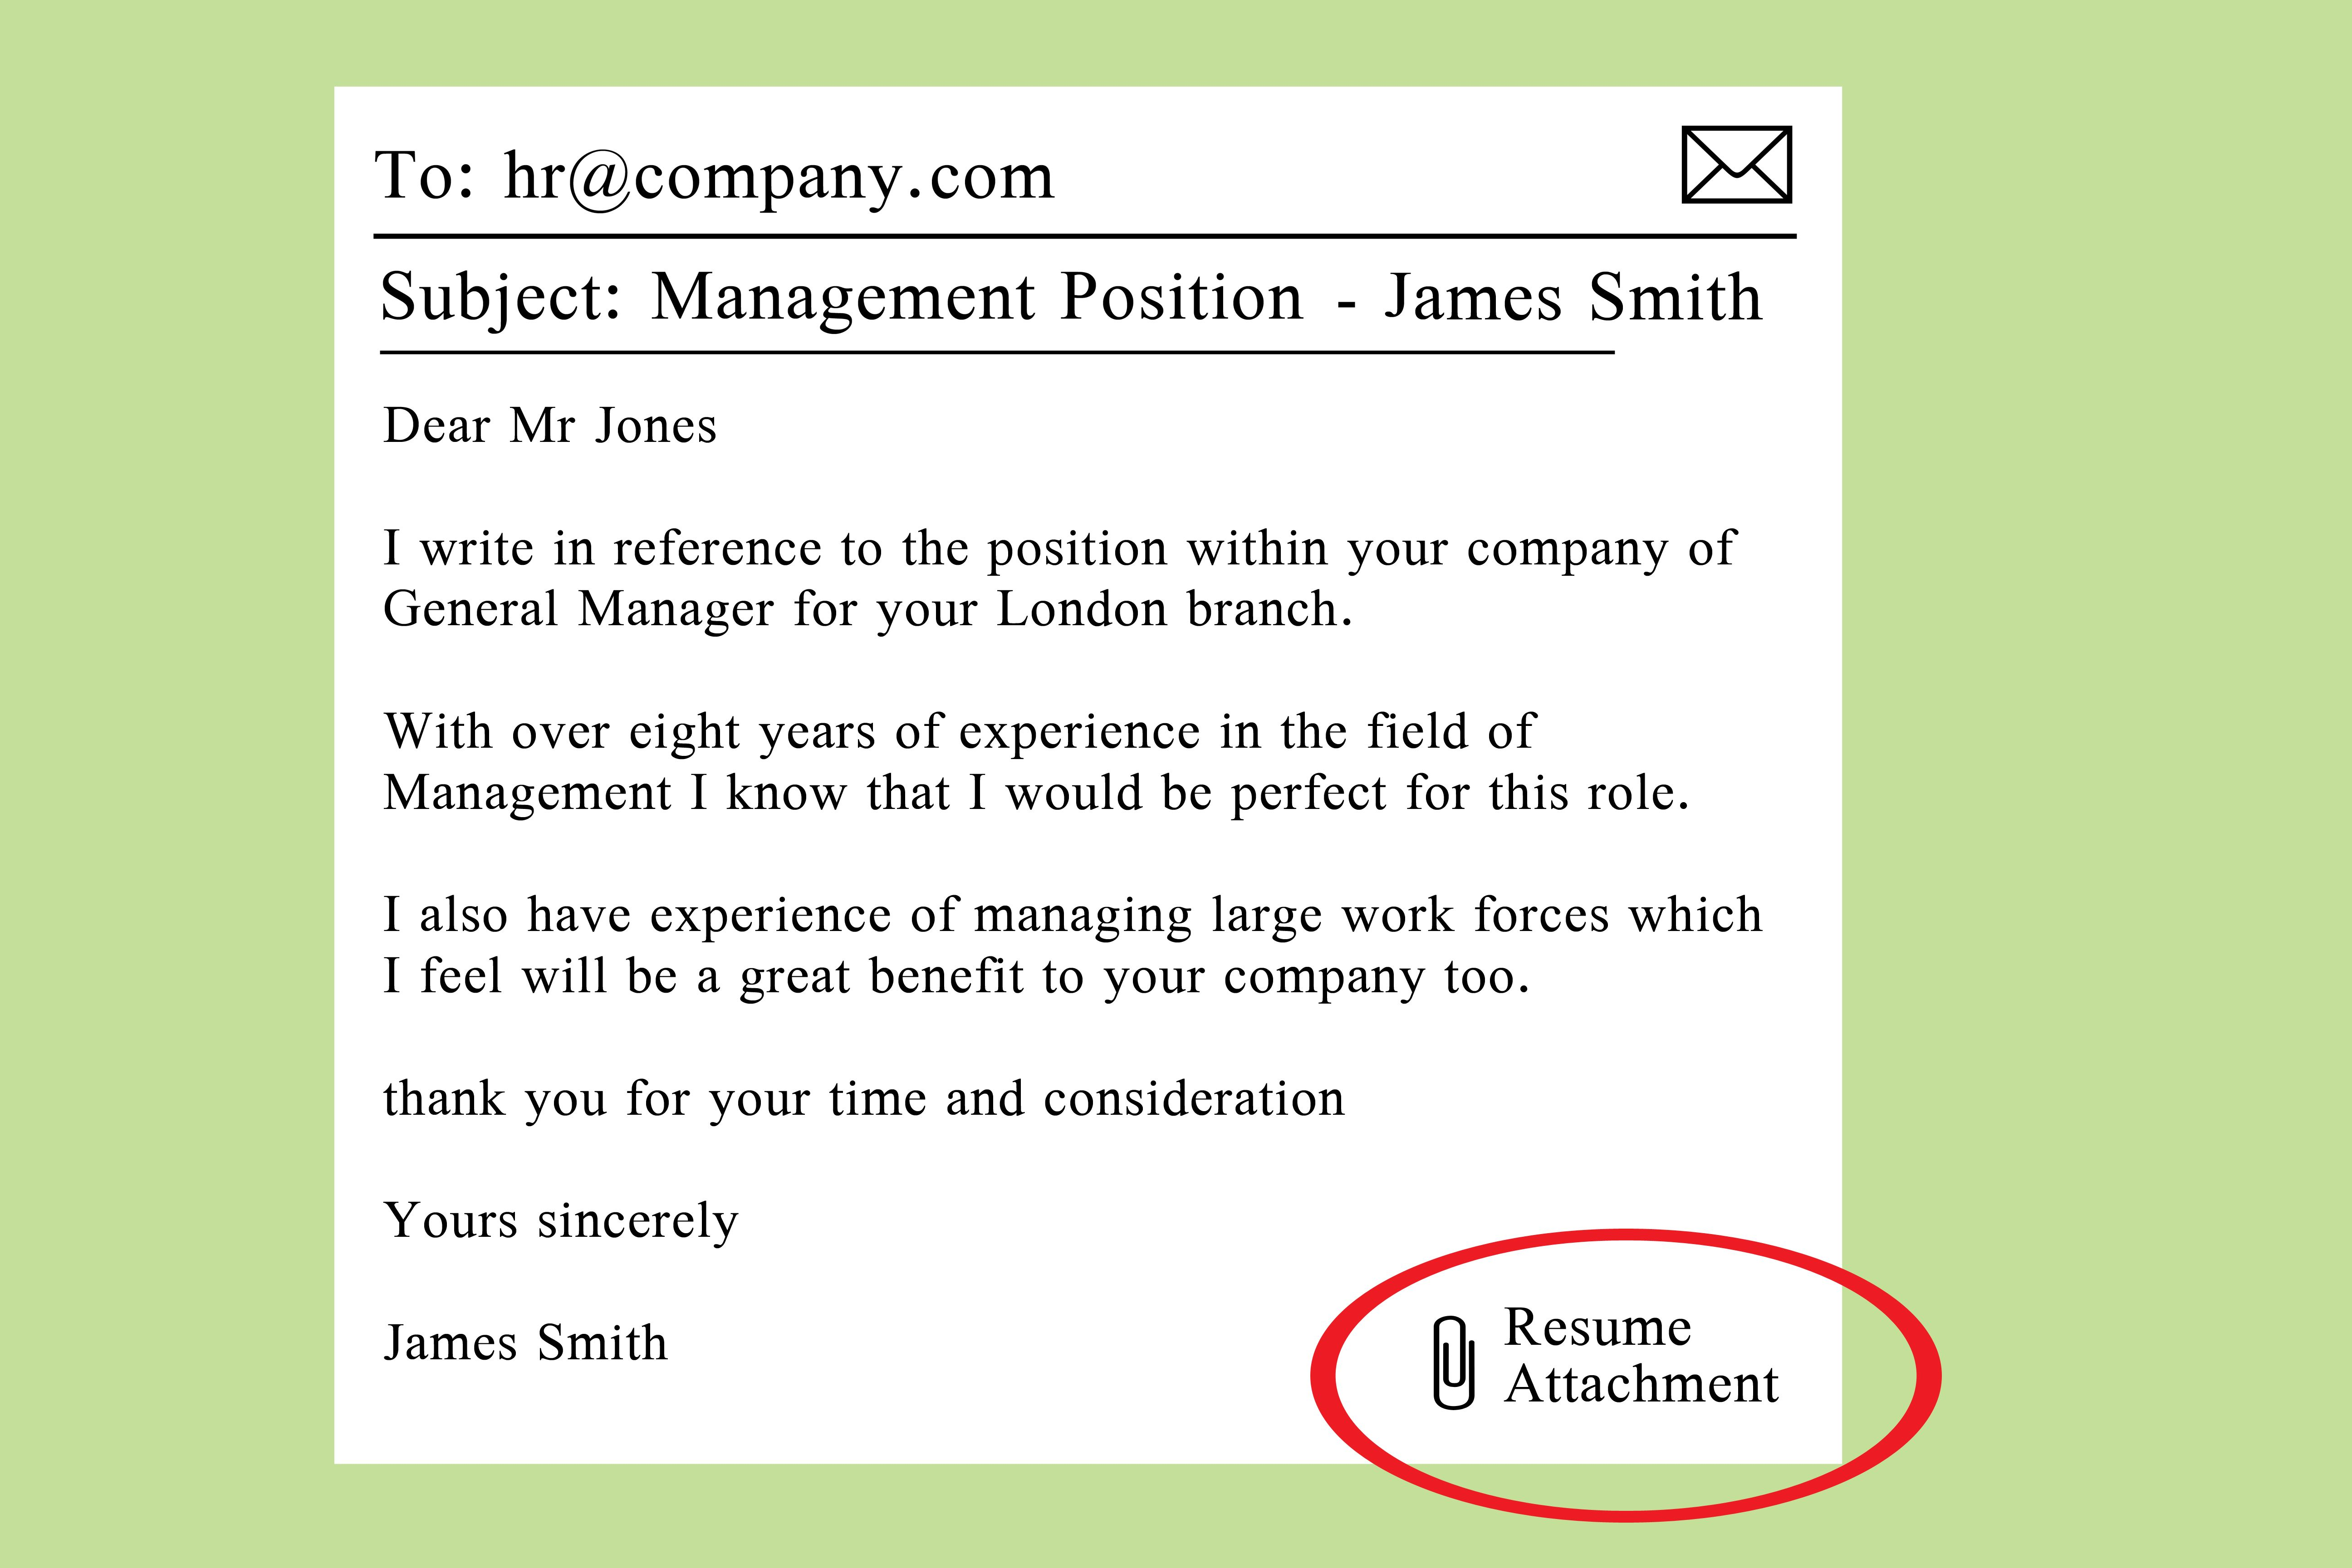 How to Write an Email Asking for a Job   Writing services, Writing ...